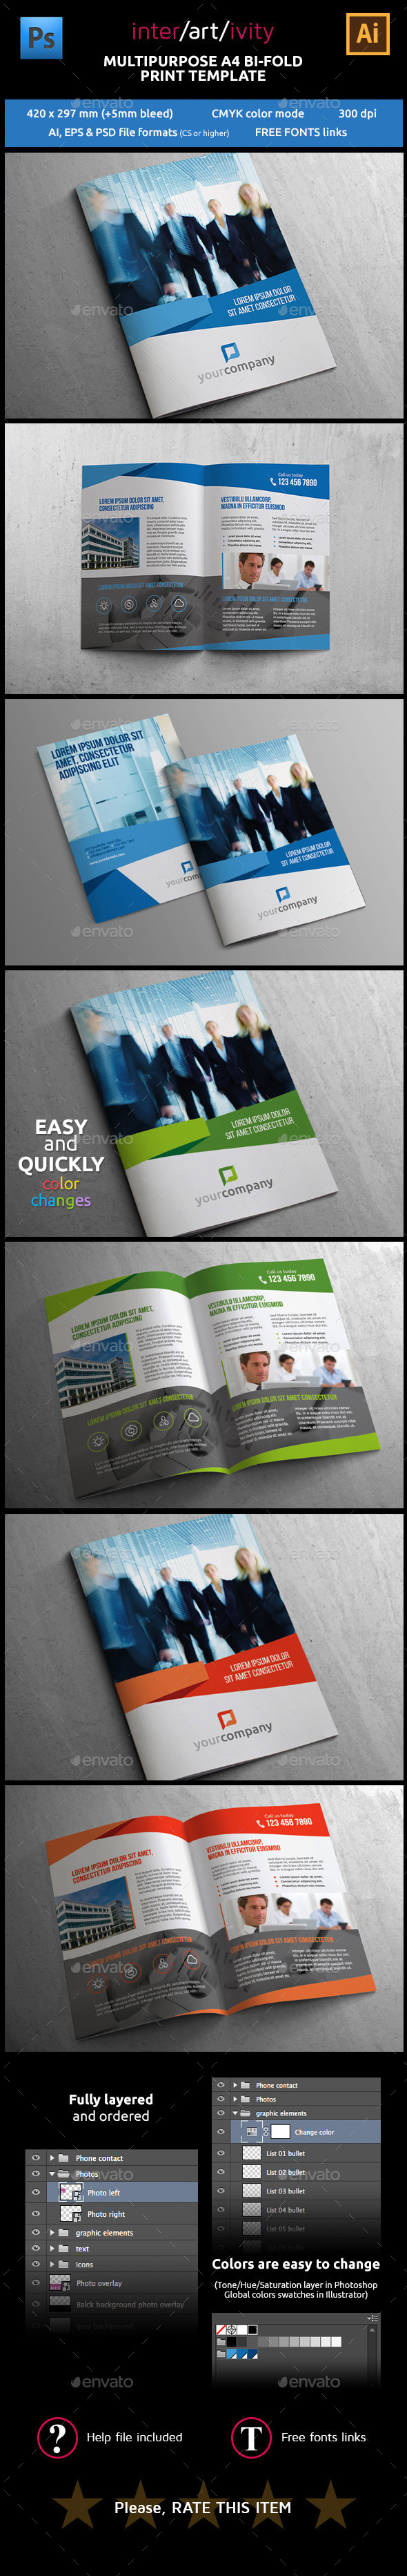 GraphicRiver MULTIPURPOSE A4 BI-FOLD PRINT TEMPLATE 8913766